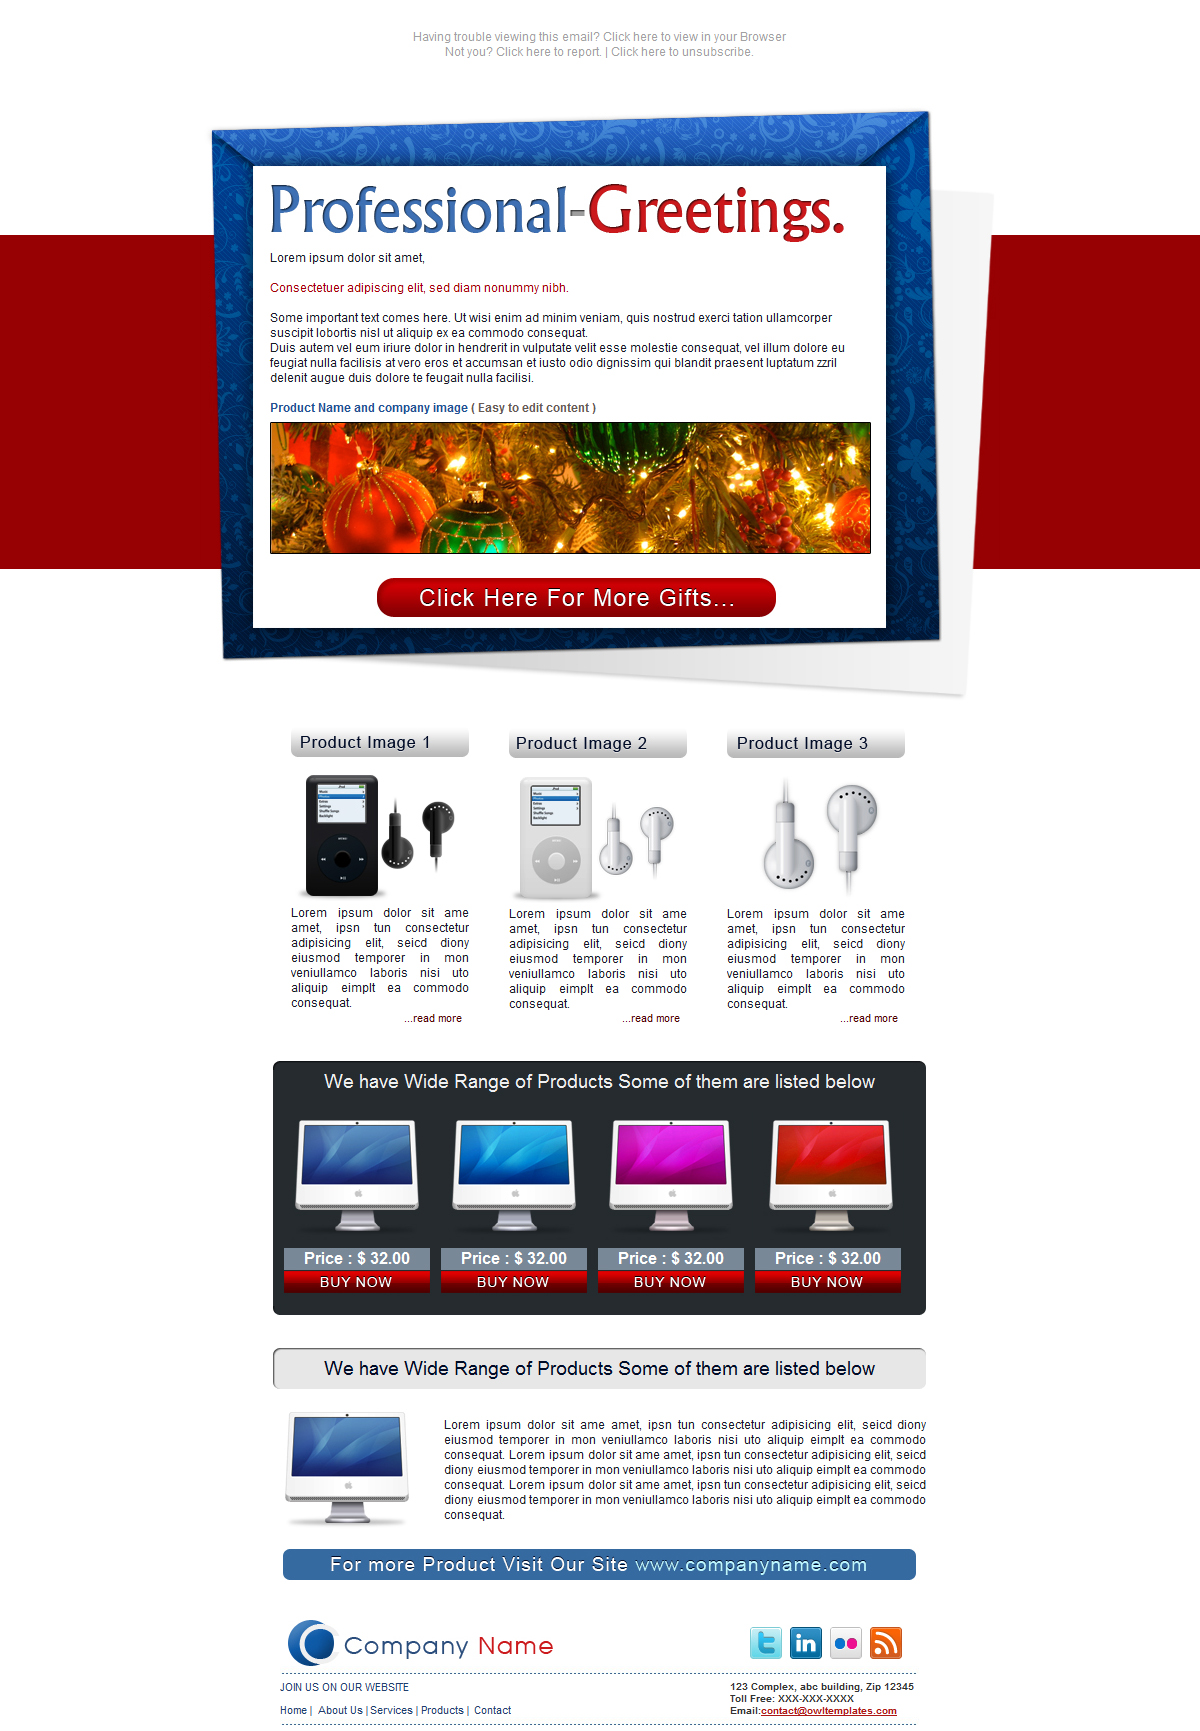 Free Download Professional Greetings - Newsletter - Email Nulled Latest Version